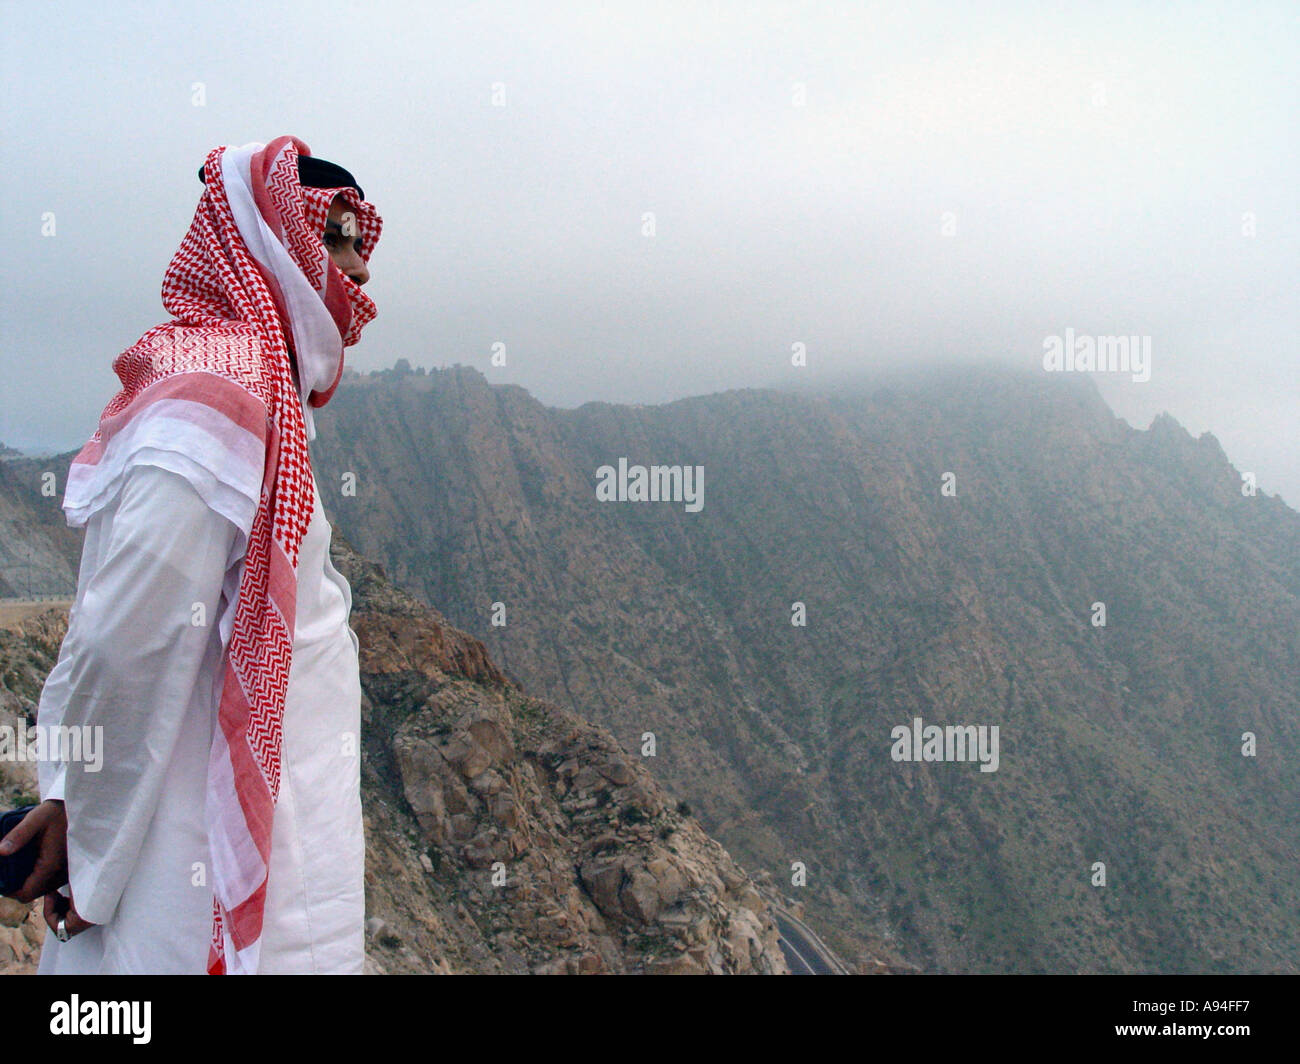 A Saudi Arab on the cliffs near Taif - Stock Image